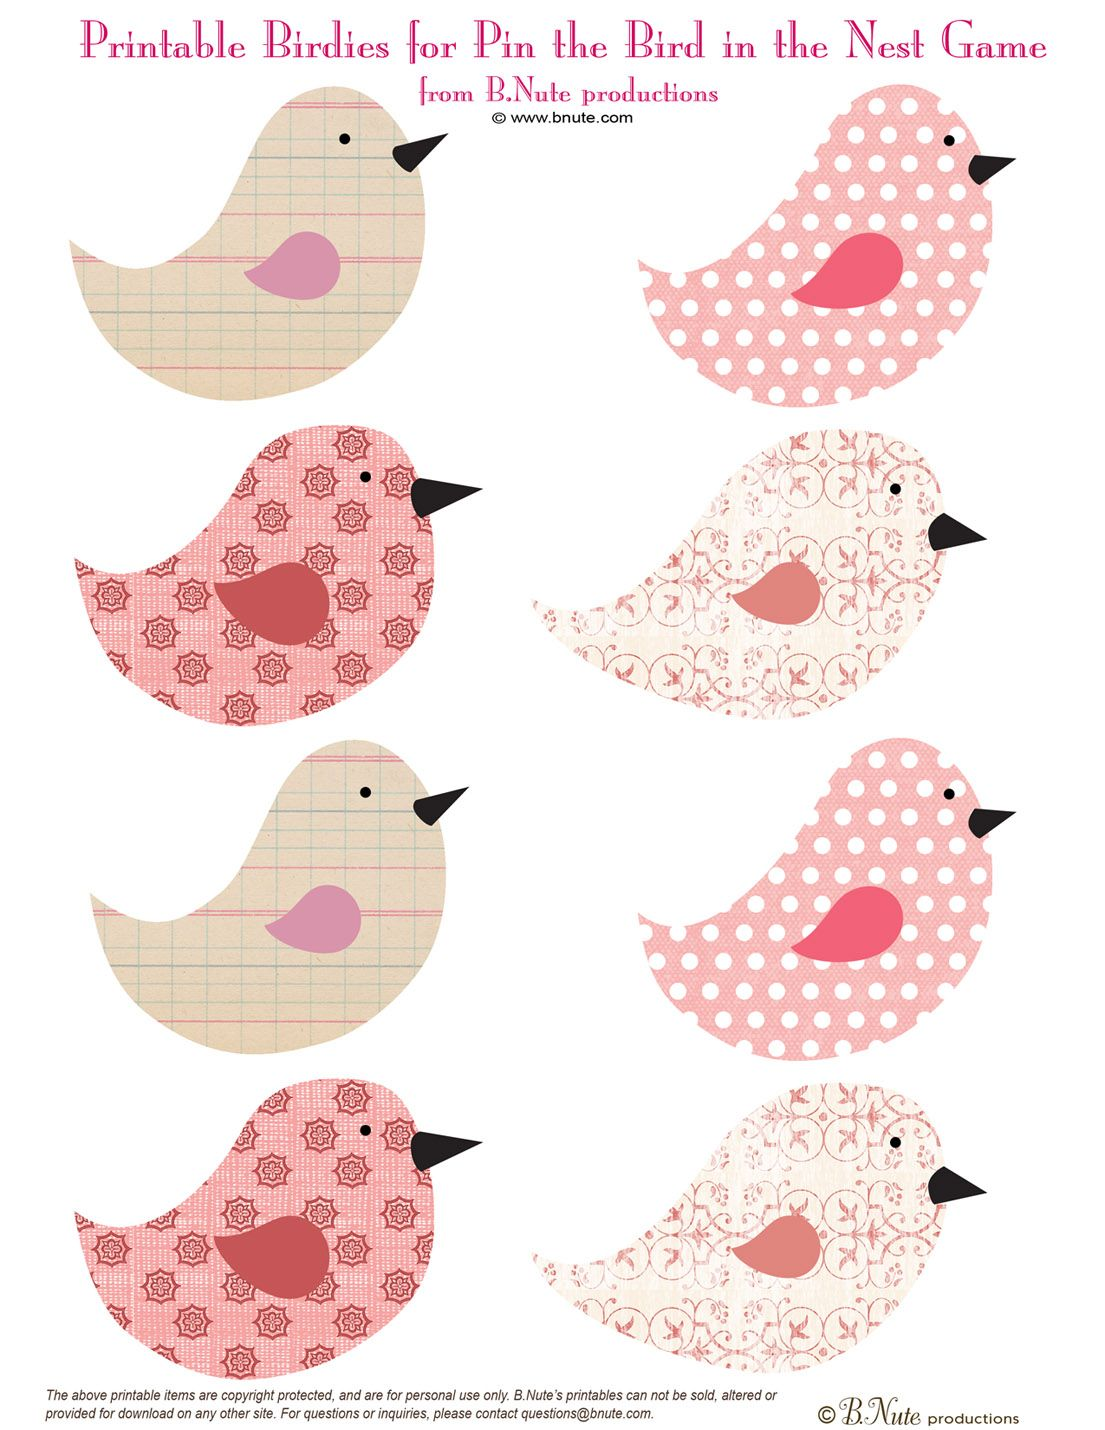 bnute productions: Free Printable Pin the Birdie in the Nest Game ...